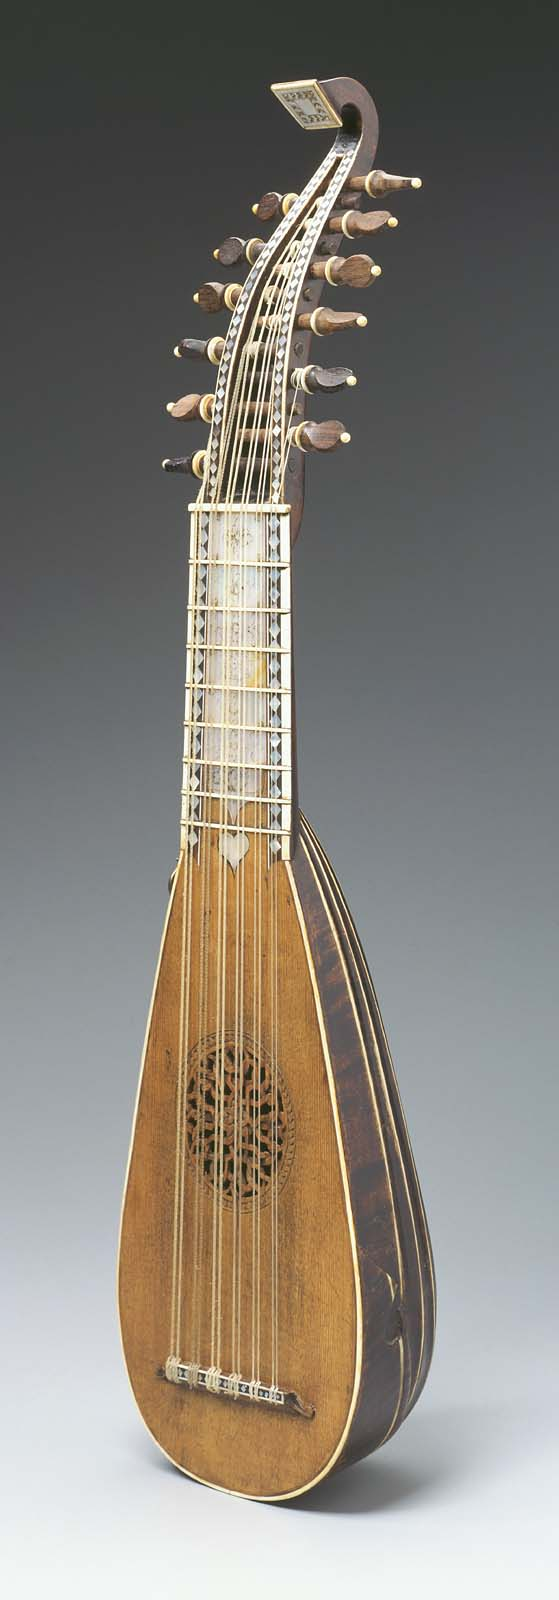 lutes, guitars, and related instruments | museum of fine arts, boston